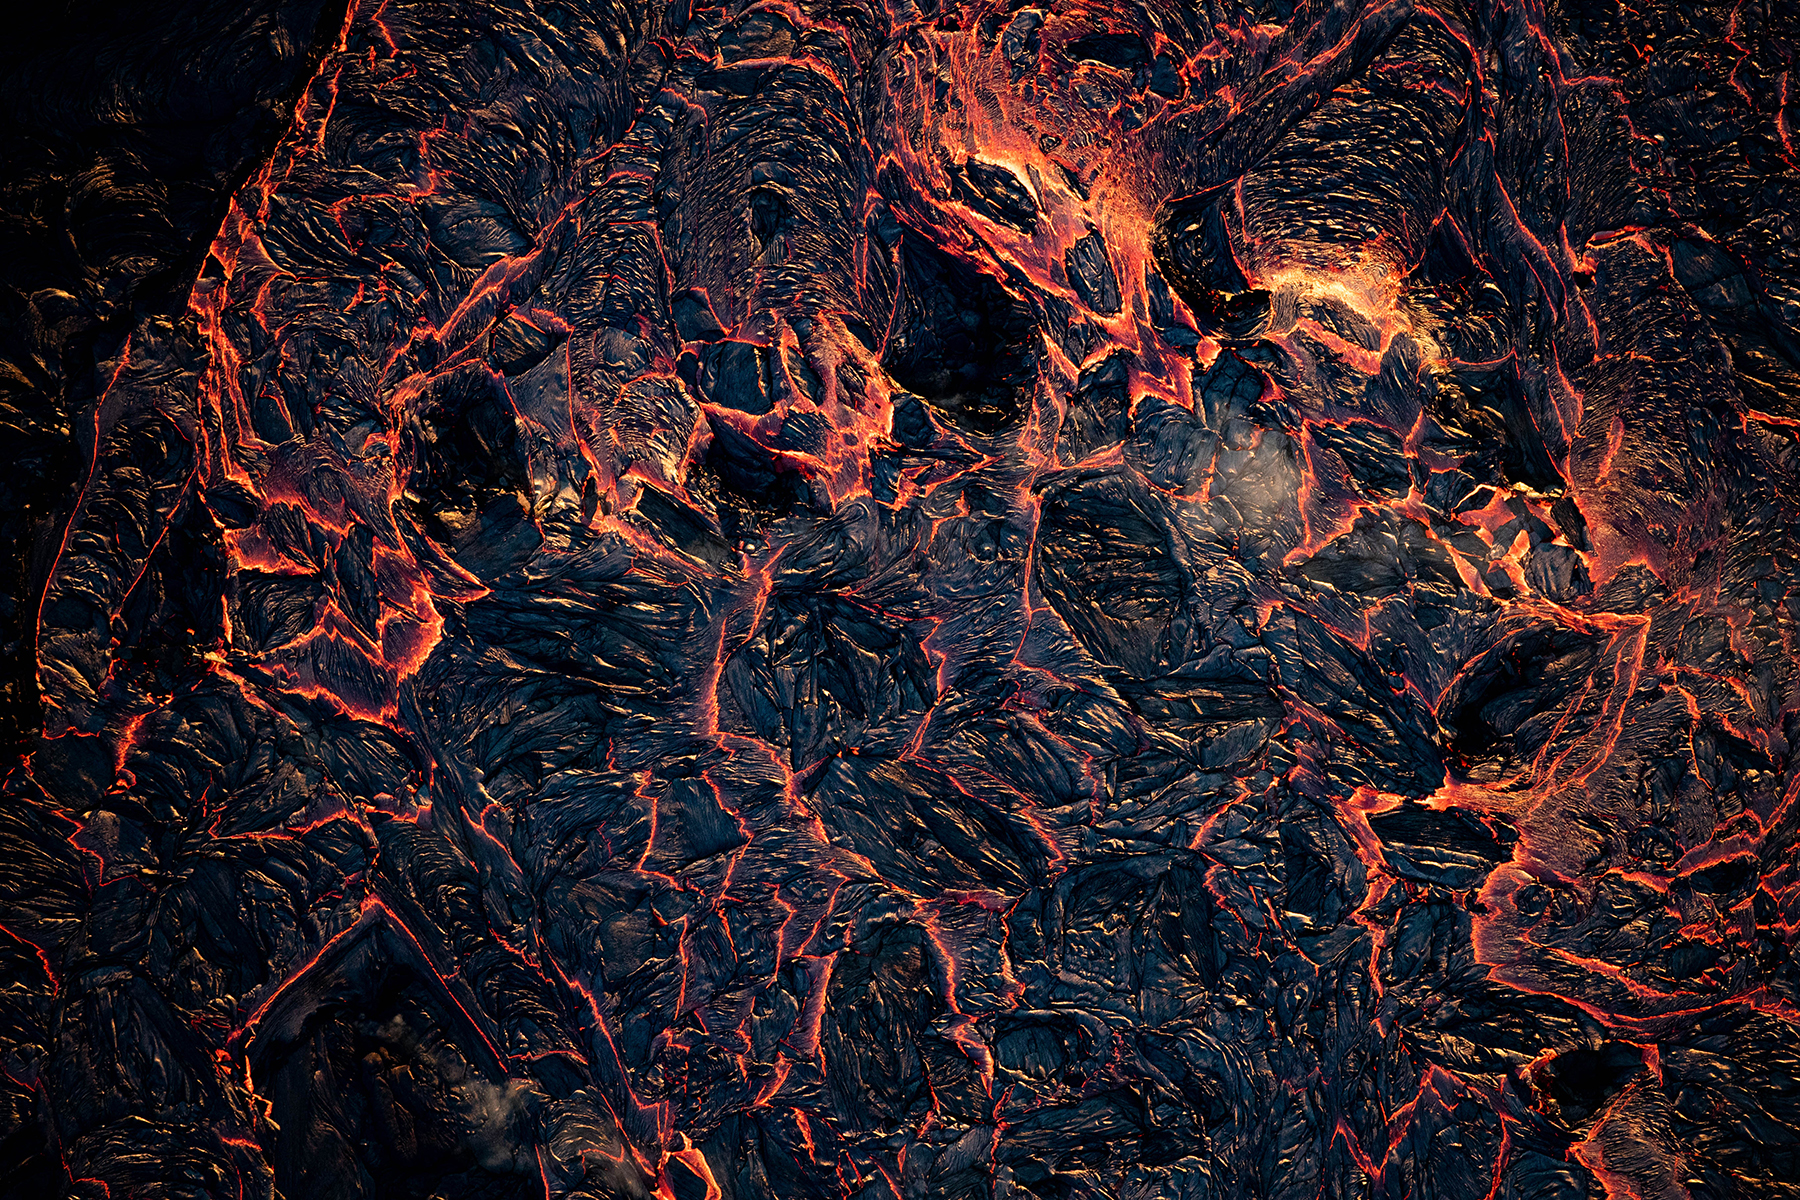 <p>As lava flows away from the fissure, the surface begins to cool and solidify, cracking as it continues to move.</p>